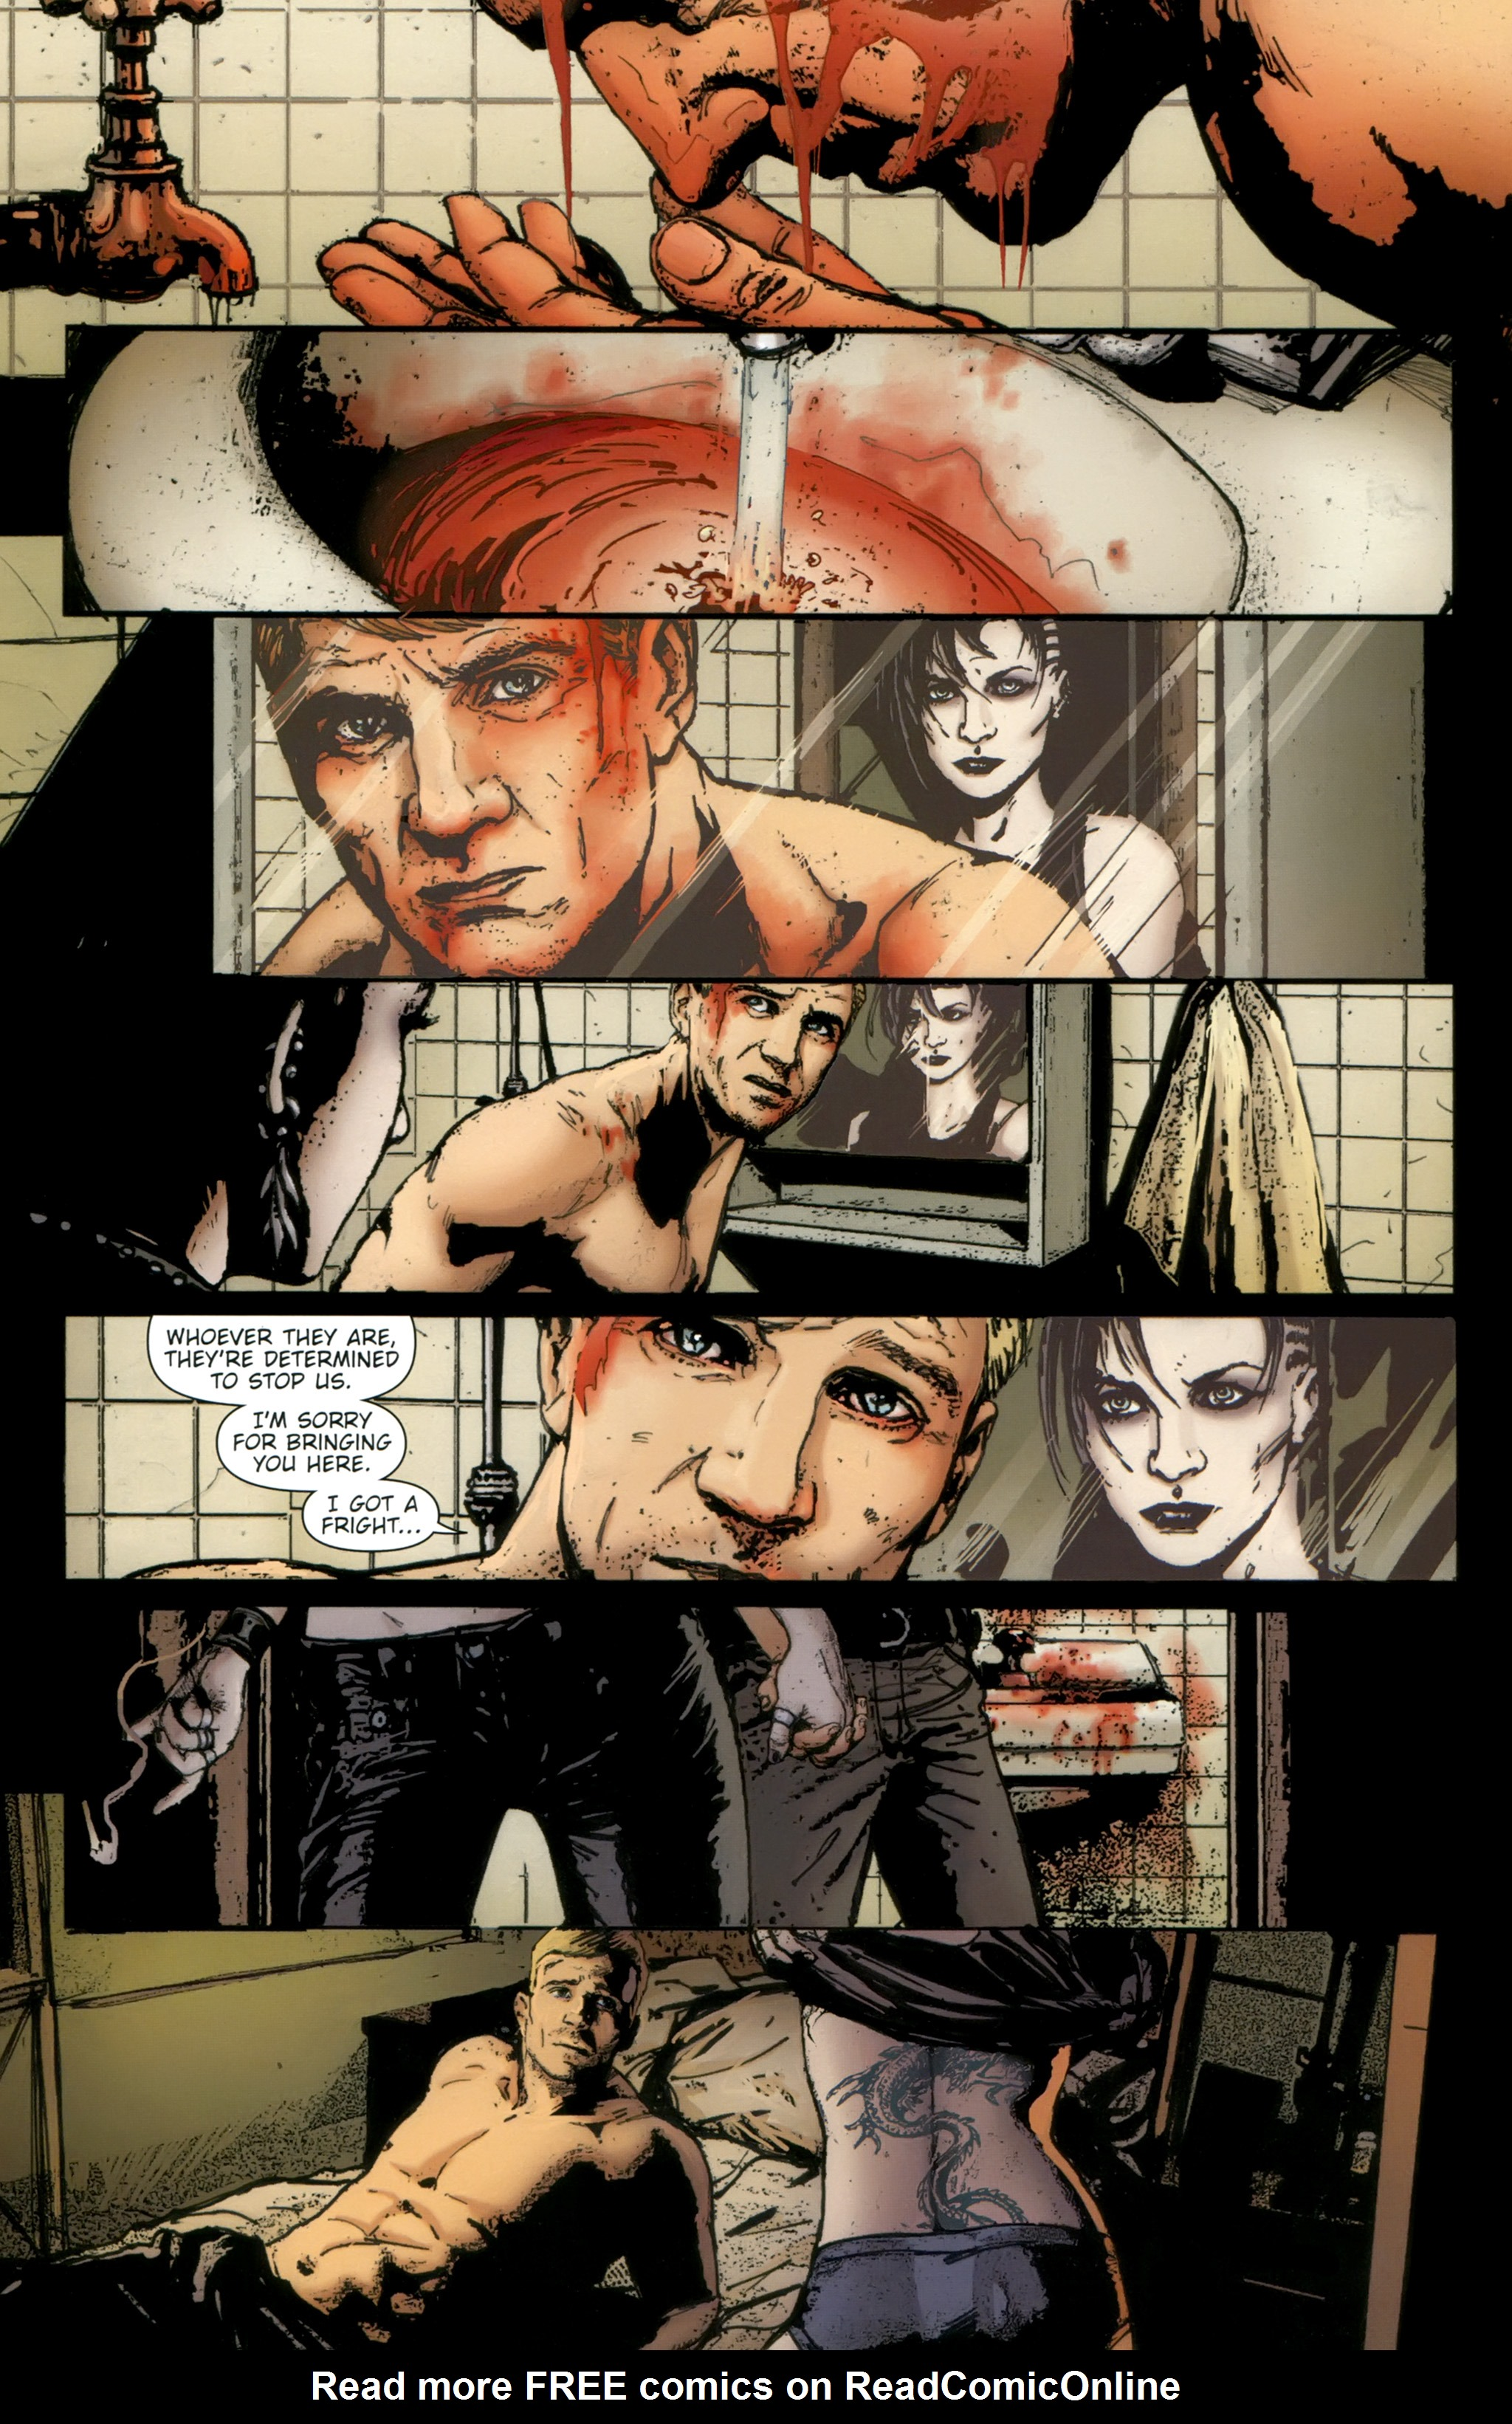 Read online The Girl With the Dragon Tattoo comic -  Issue # TPB 2 - 72